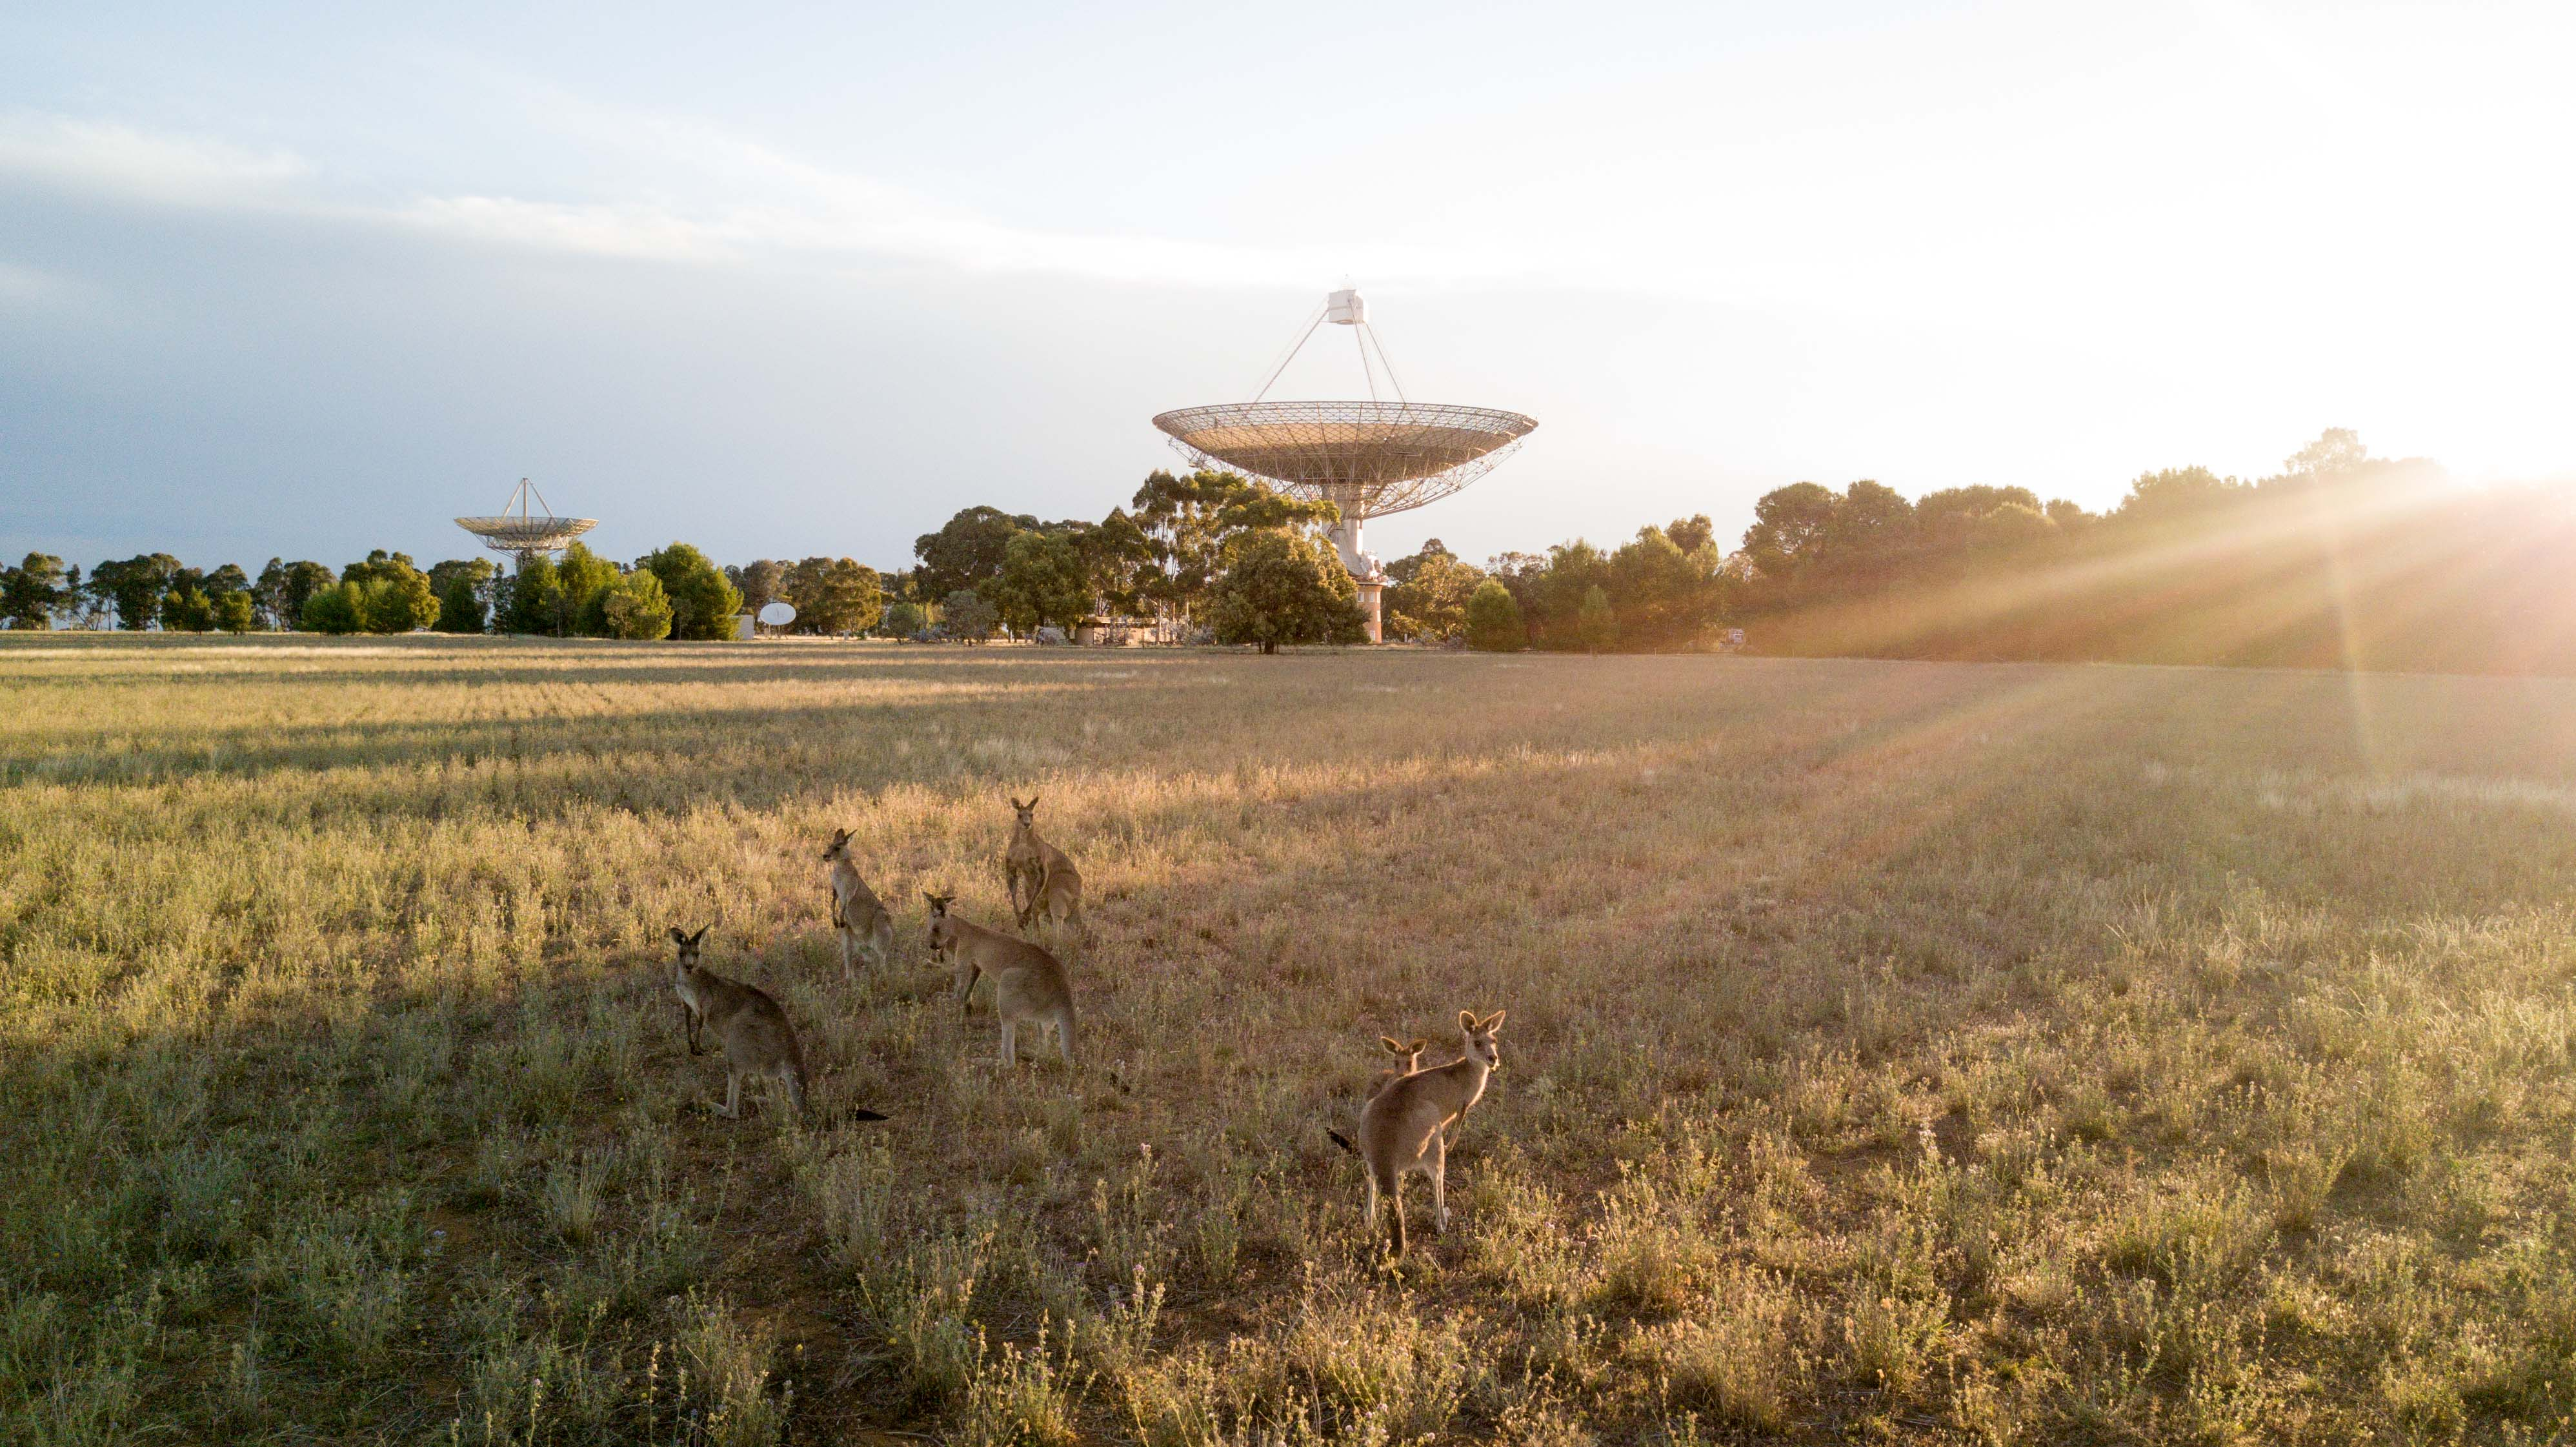 Kangaroos standing near the Parkes radio telescope at dawn.